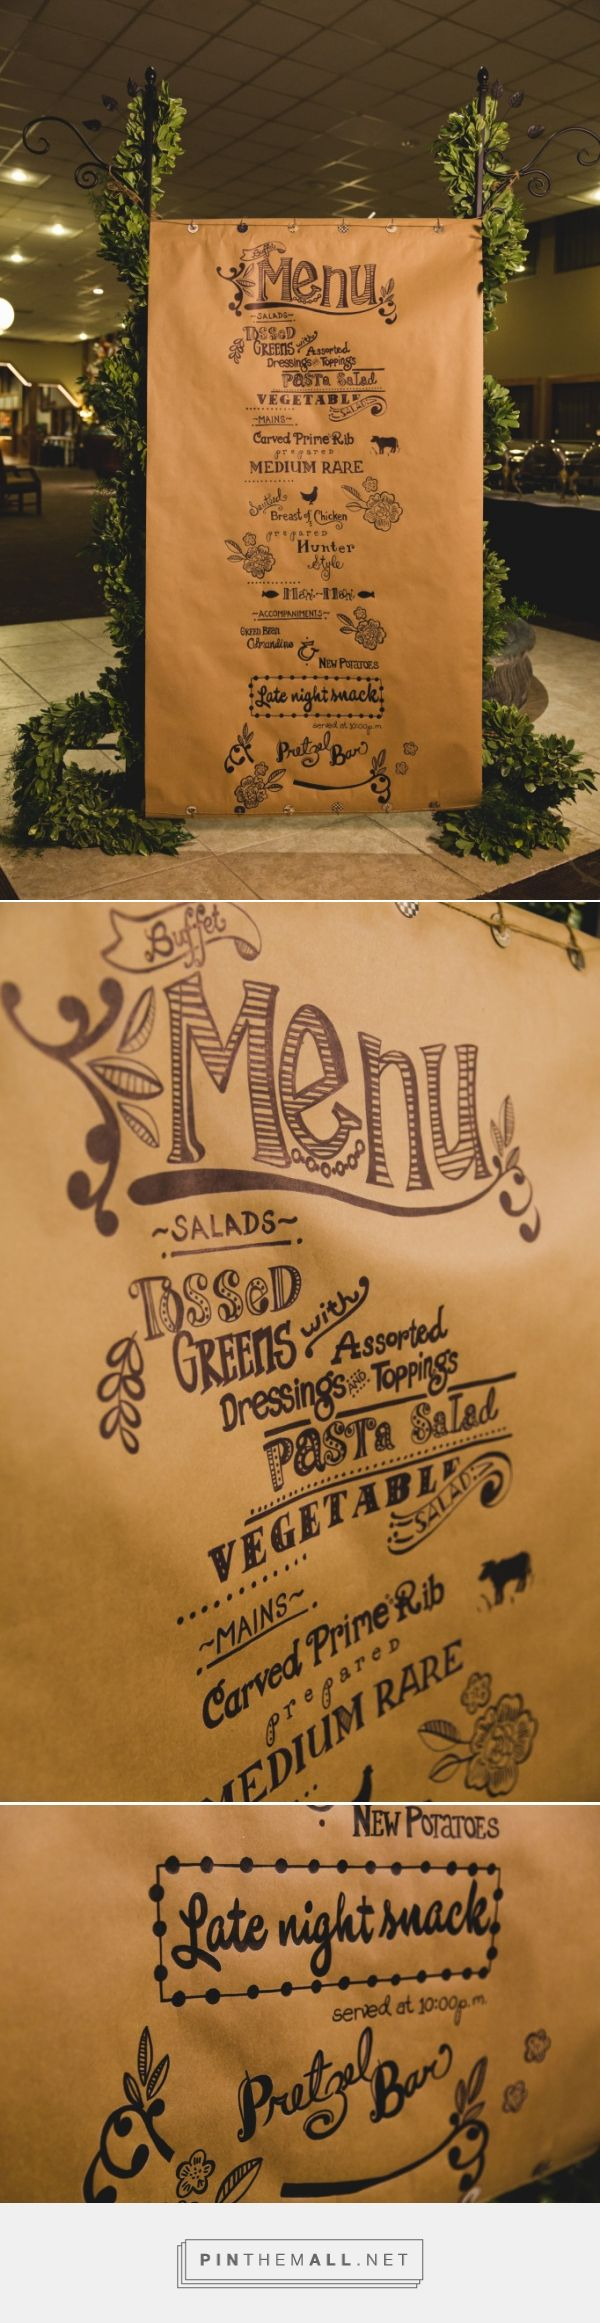 Large hand-written and hand-illustrated menu on butcher paper - EventChic Blog - Dallas Fort Worth Event, Wedding and Party Planning - created via http://pinthemall.net